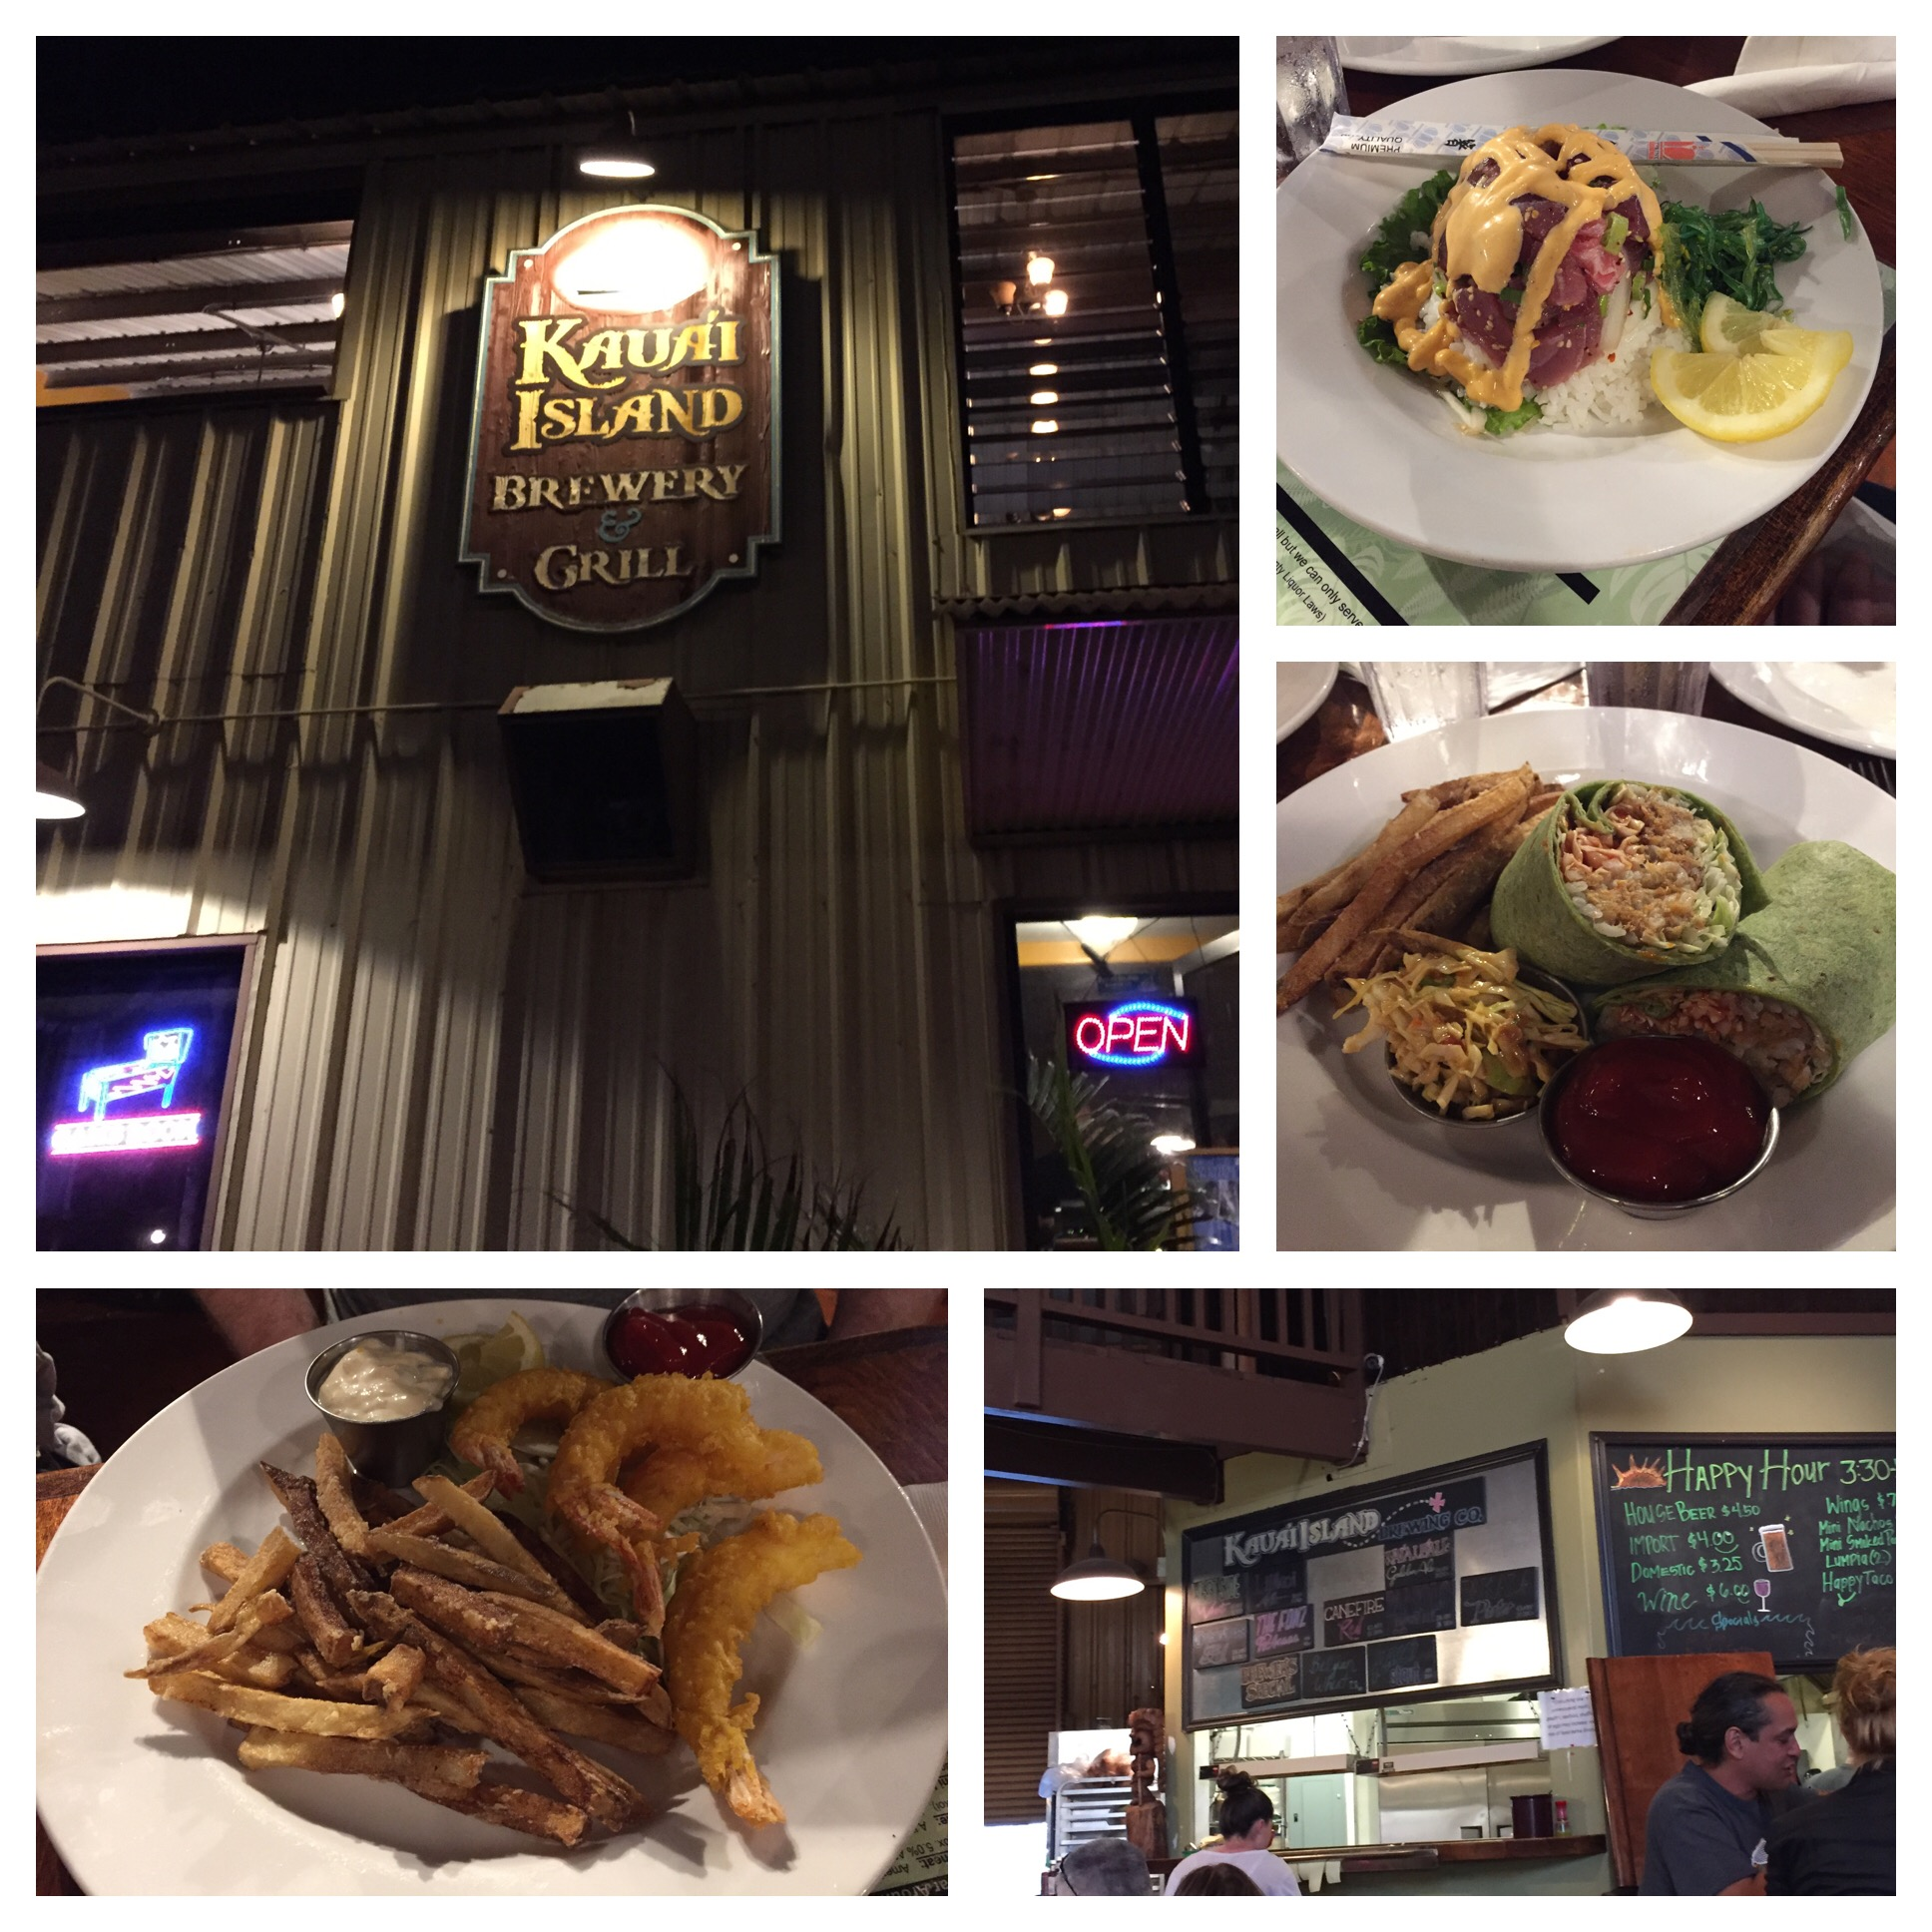 Ahi Tuna top right, Pulled Pork Wrap with yummy fries and interesting coleslaw in the middle, Shrimp and fries bottom. Lots of pork served on the island. I know there are wild pigs so maybe that's why??